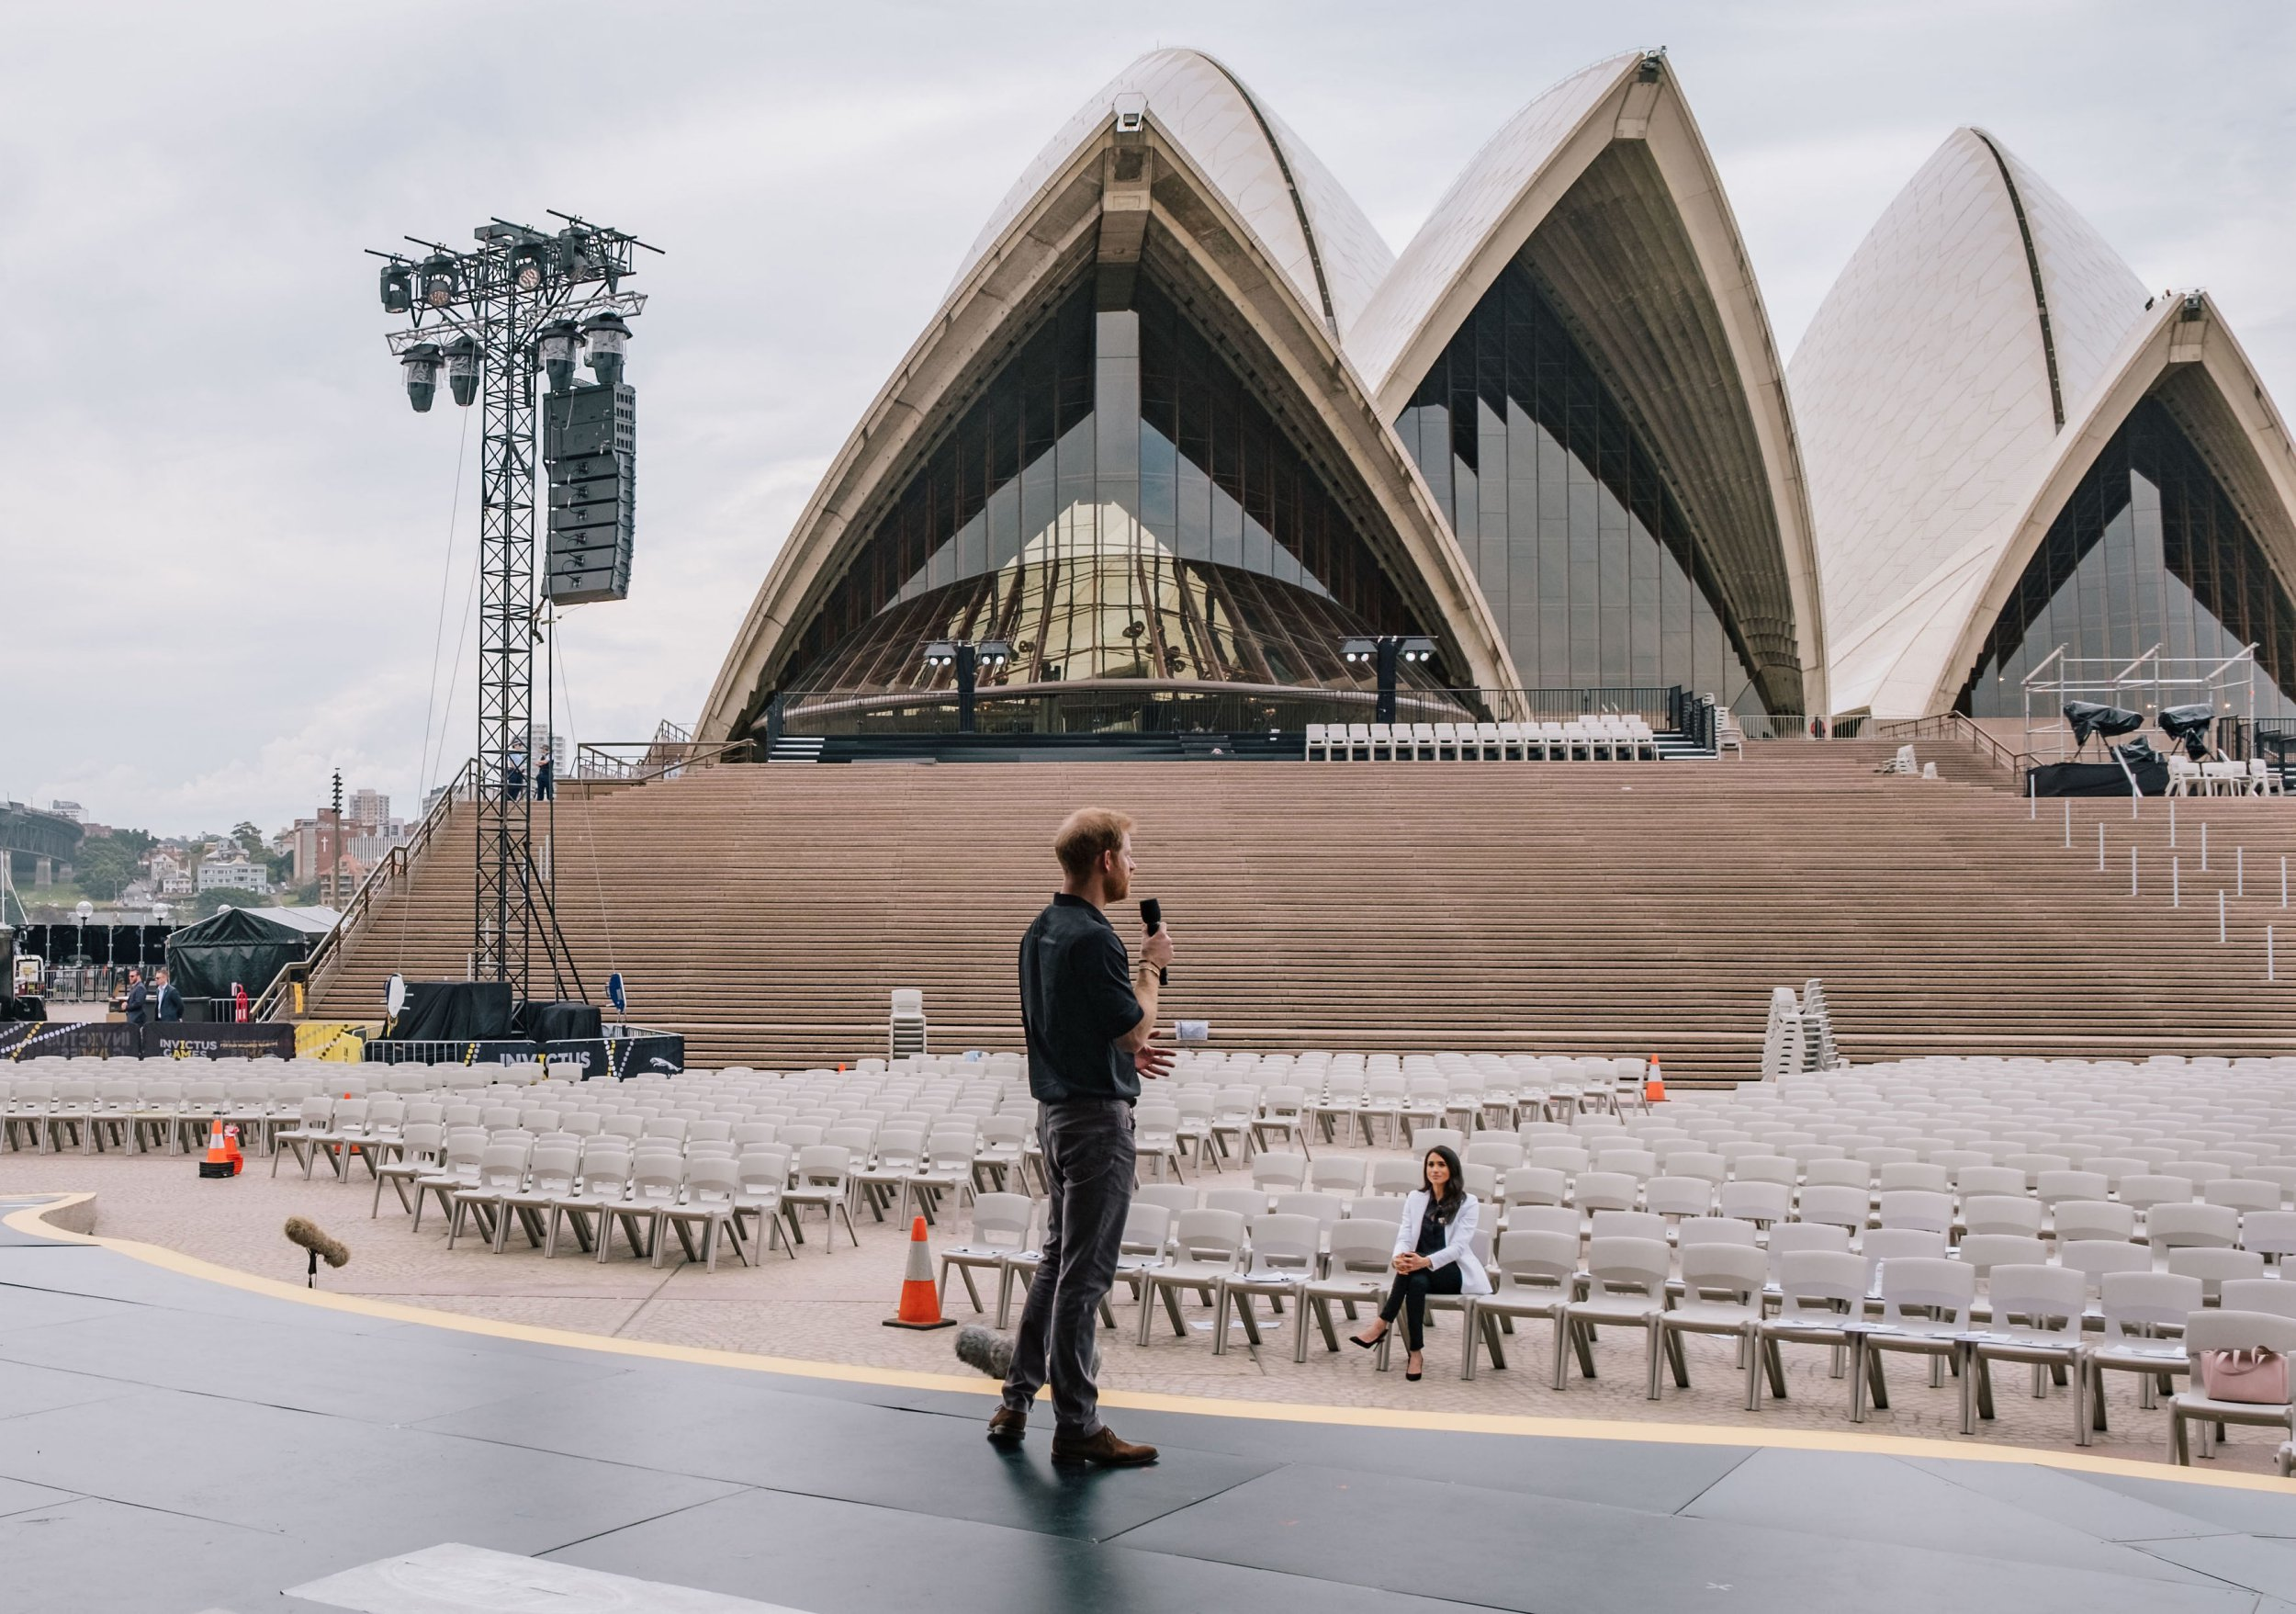 MANDATORY CREDIT: Kensington Palace Kensington Palace handout photo dated 20/10/18 of the Duchess of Sussex looking on as the Duke of Sussex practices his speech ahead of the opening ceremony of the 2018 Invictus Games at Sydney Opera House. PRESS ASSOCIATION Photo. Issue date: Saturday October 20, 2018. See PA story ROYAL Tour. Photo credit should read: Kensington Palace/PA Wire NOTE TO EDITORS: This handout photo may only be used in for editorial reporting purposes for the contemporaneous illustration of events, things or the people in the image or facts mentioned in the caption. Reuse of the picture may require further permission from the copyright holder.